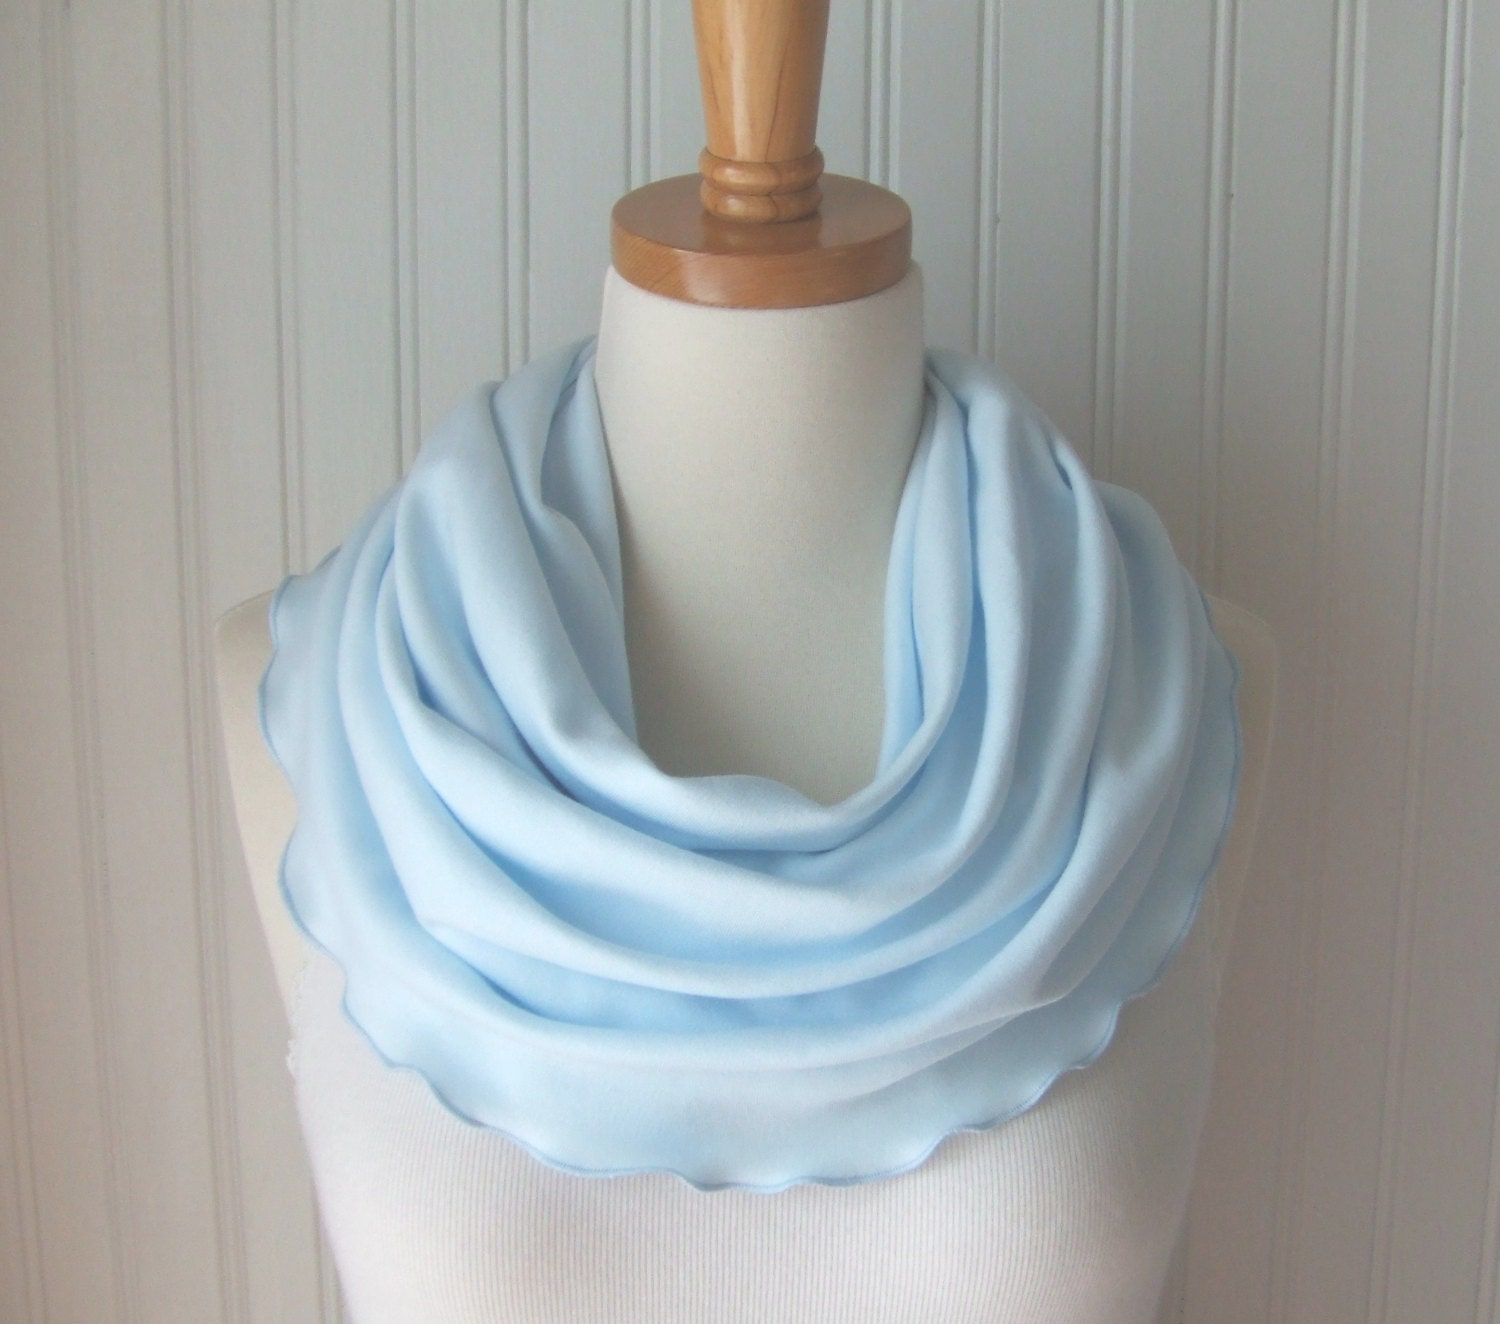 Robins Egg Blue Ruffled Jersey Infinity Scarf - Circle, Loop, Cowl Scarf - Summer Fashion - JANNYSGIRL